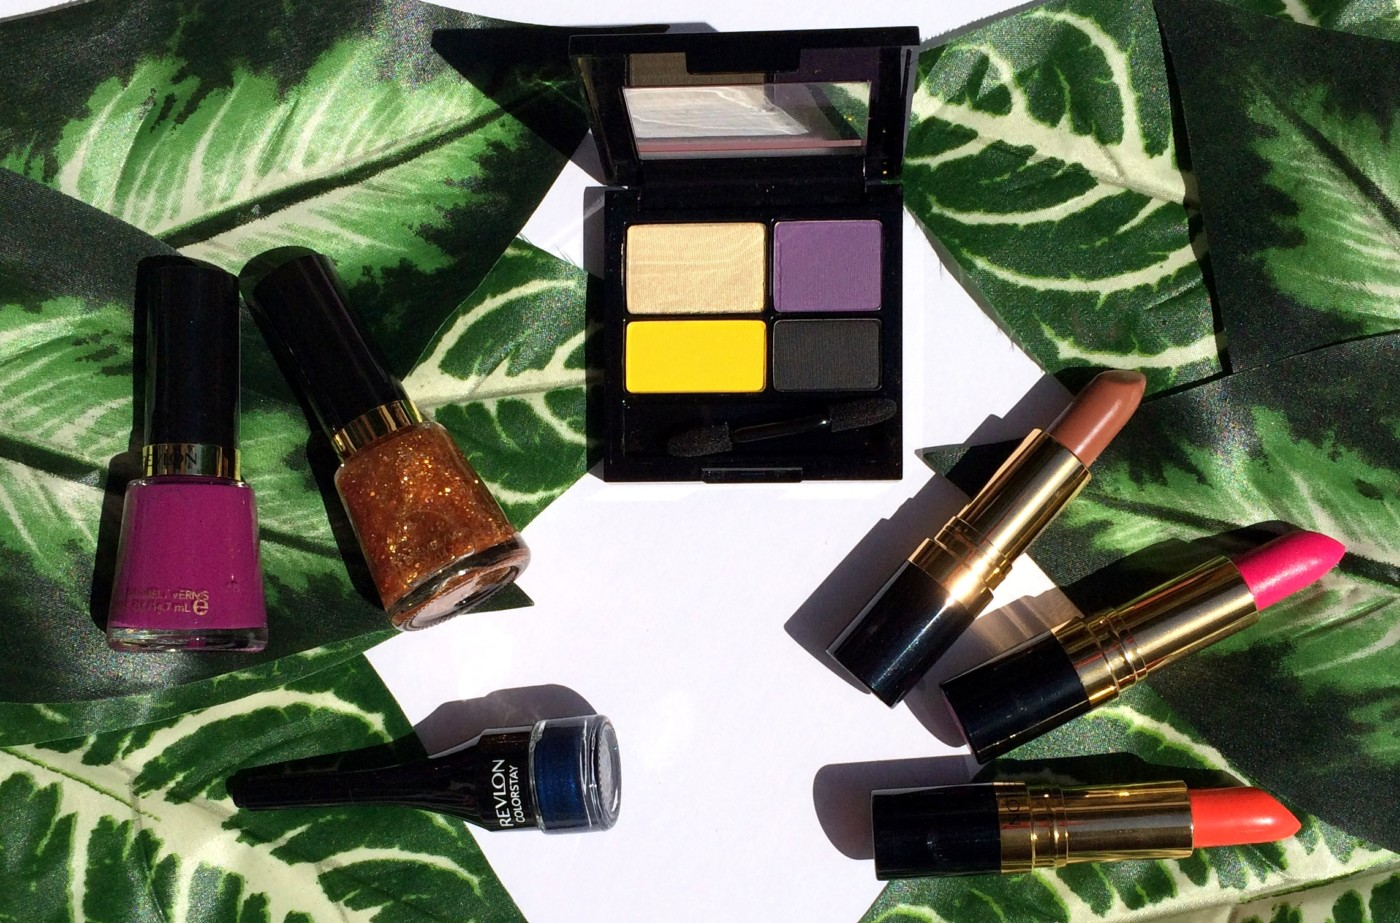 The Rio Rush Collection by Gucci Westman for Revlon (Limited Edition)